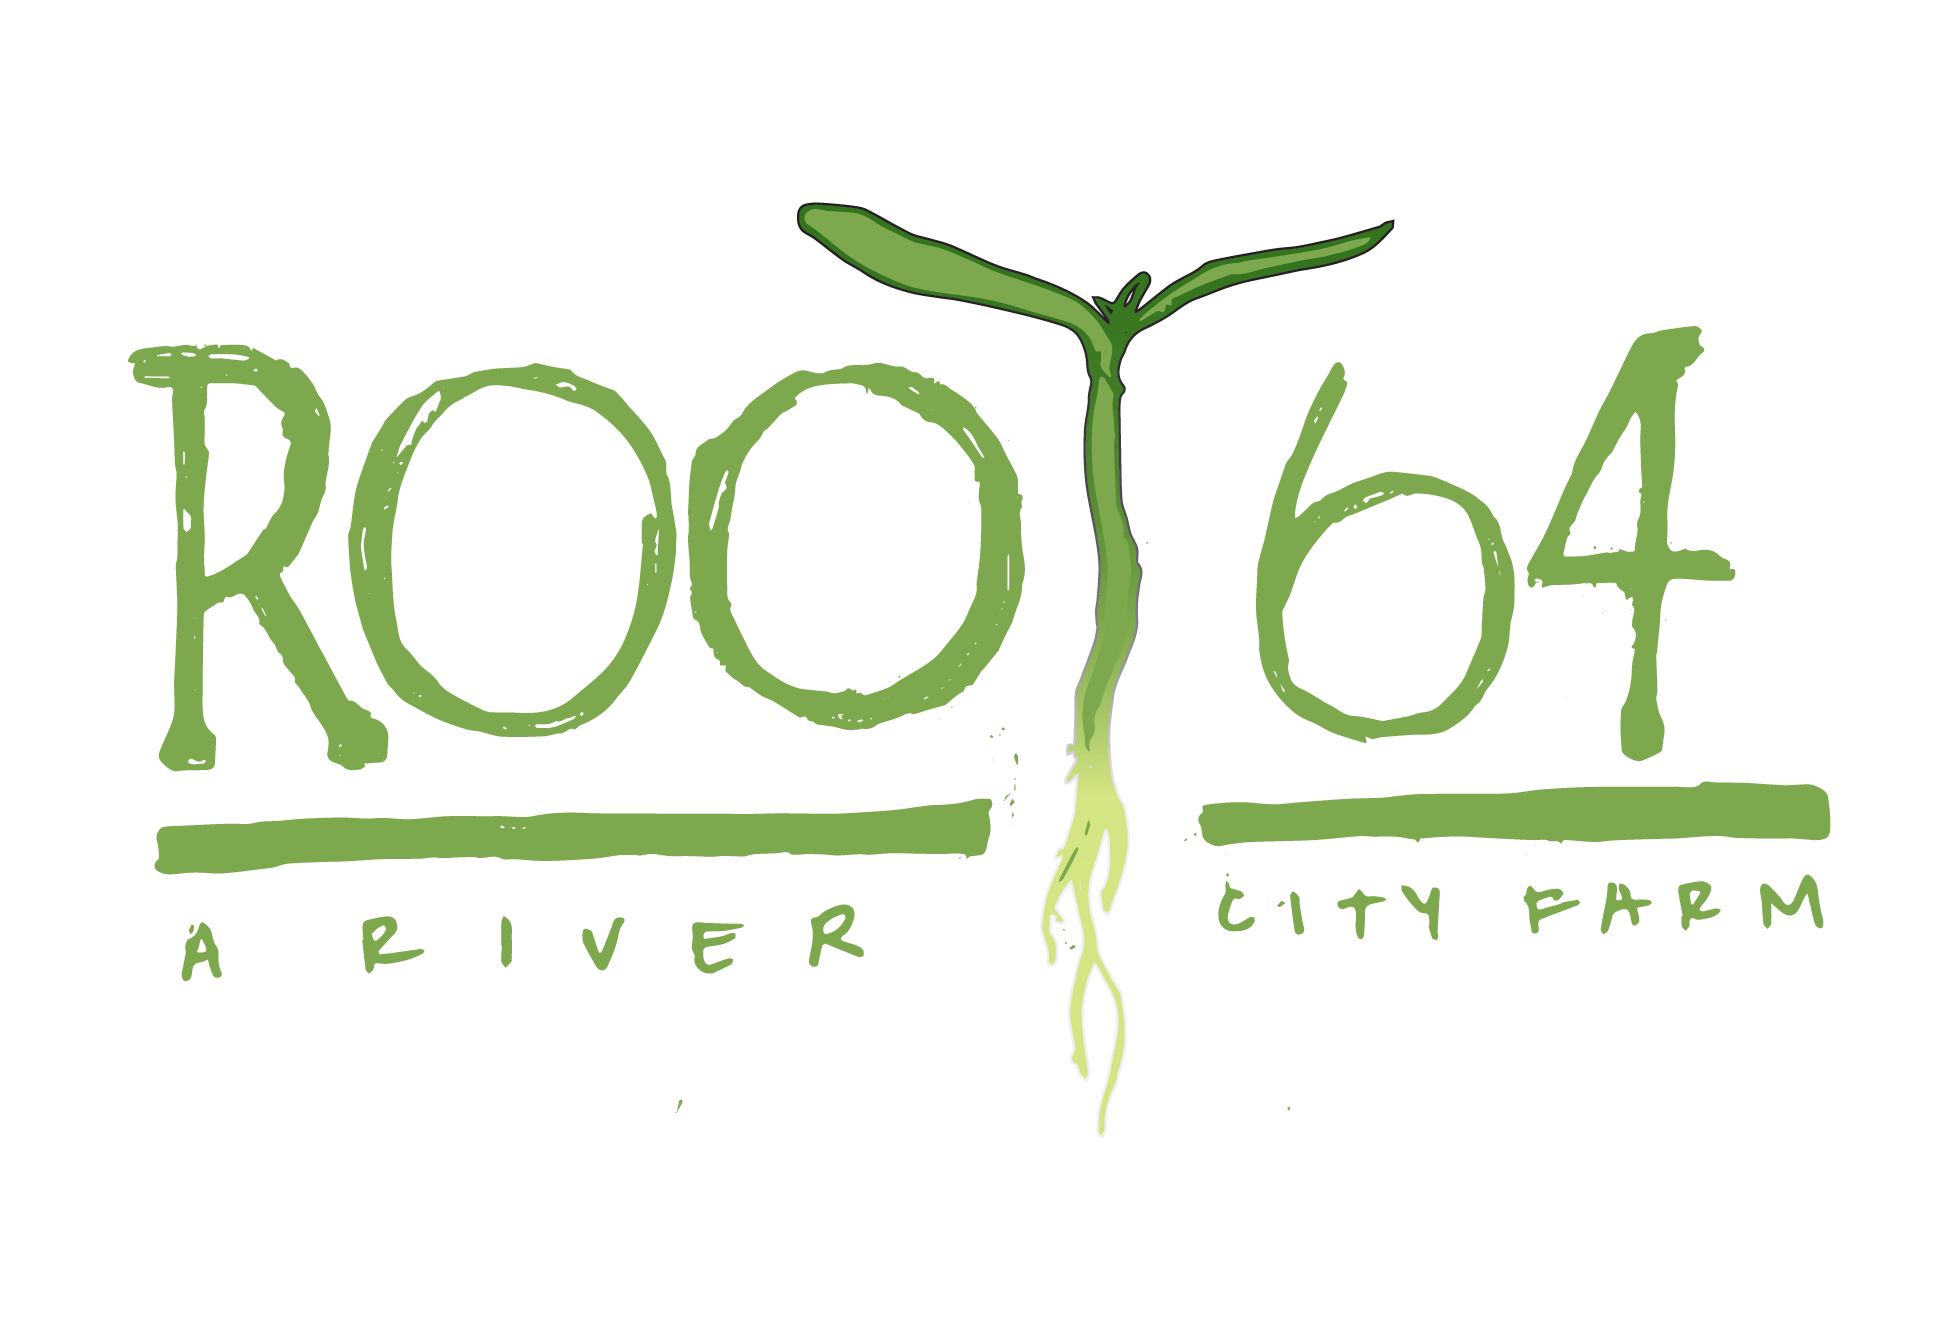 Root_64_Logo_Refinements_20180427_01.png